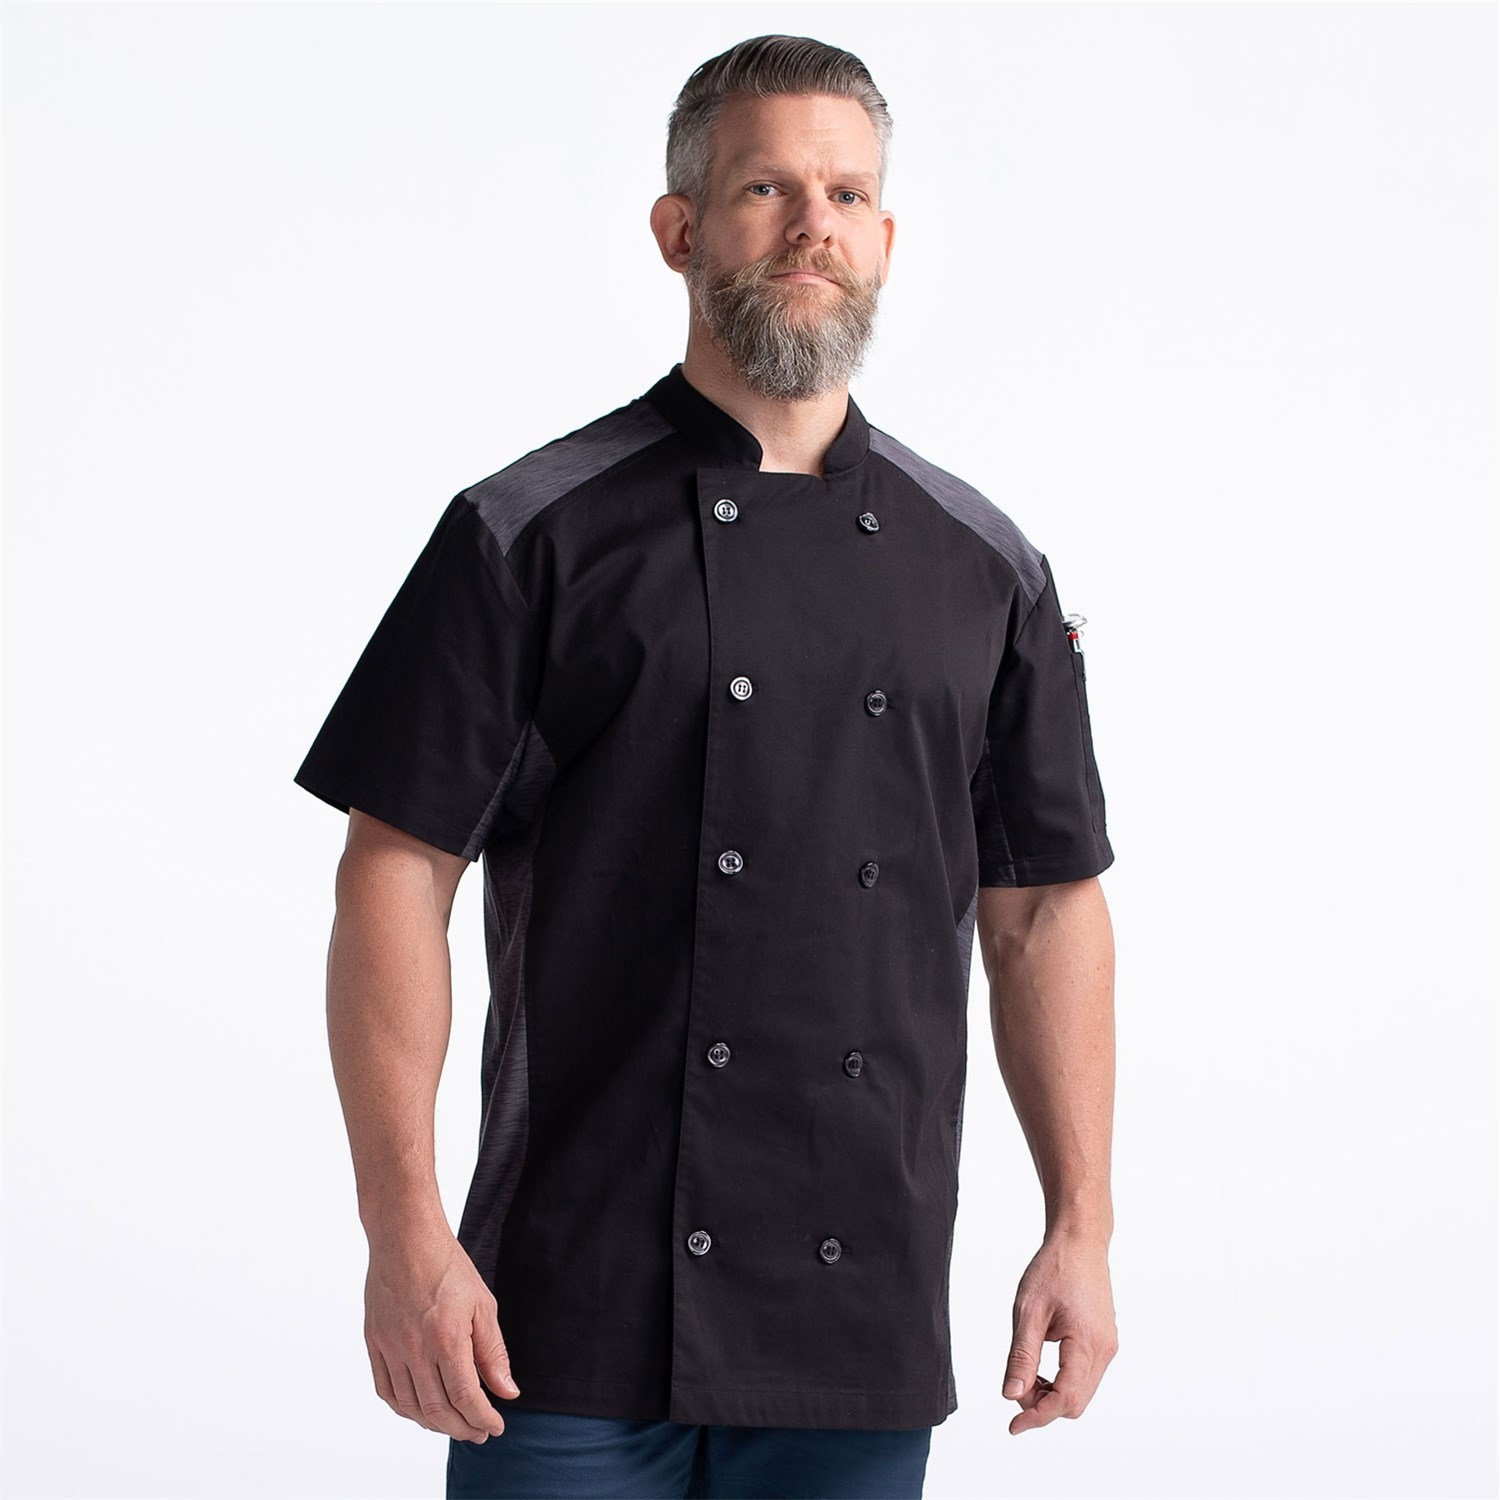 CW5630-CW30-11_Chefwear-Mens-Short-Sleeve-Quick-Cool-Stretch-Chef-Jacket_Black